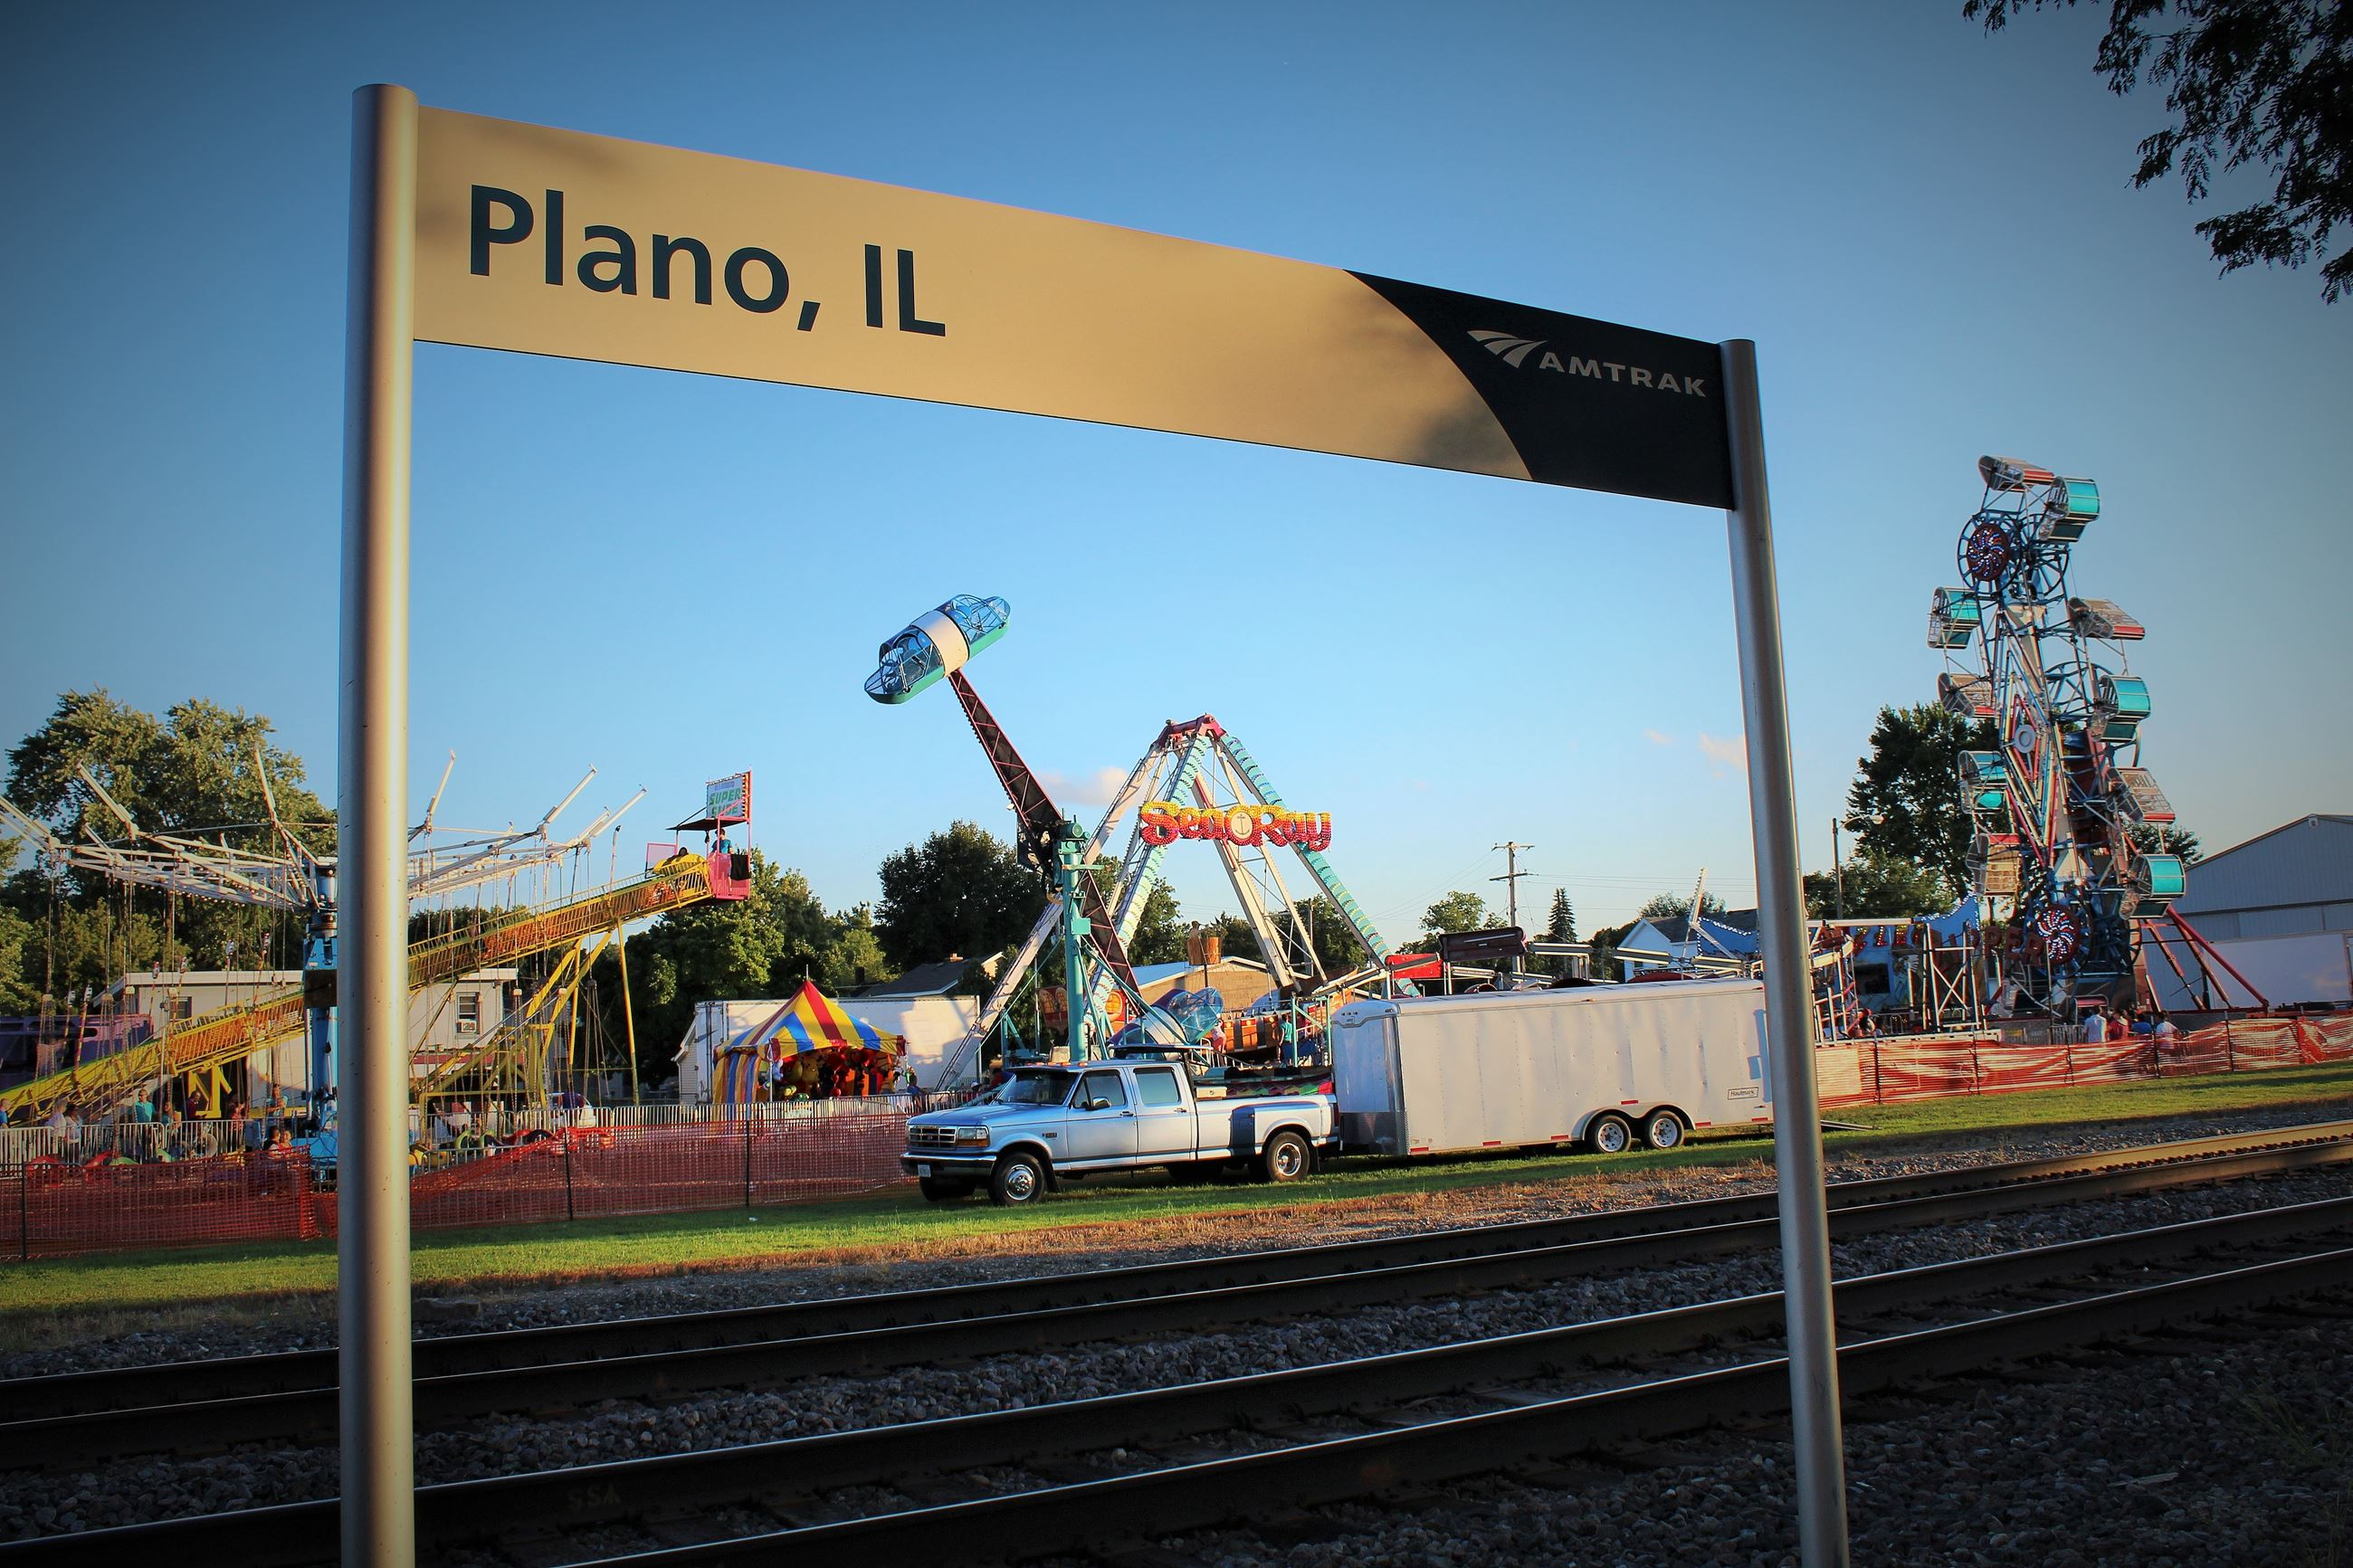 Fairgrounds in Plano, IL by Mike Wade